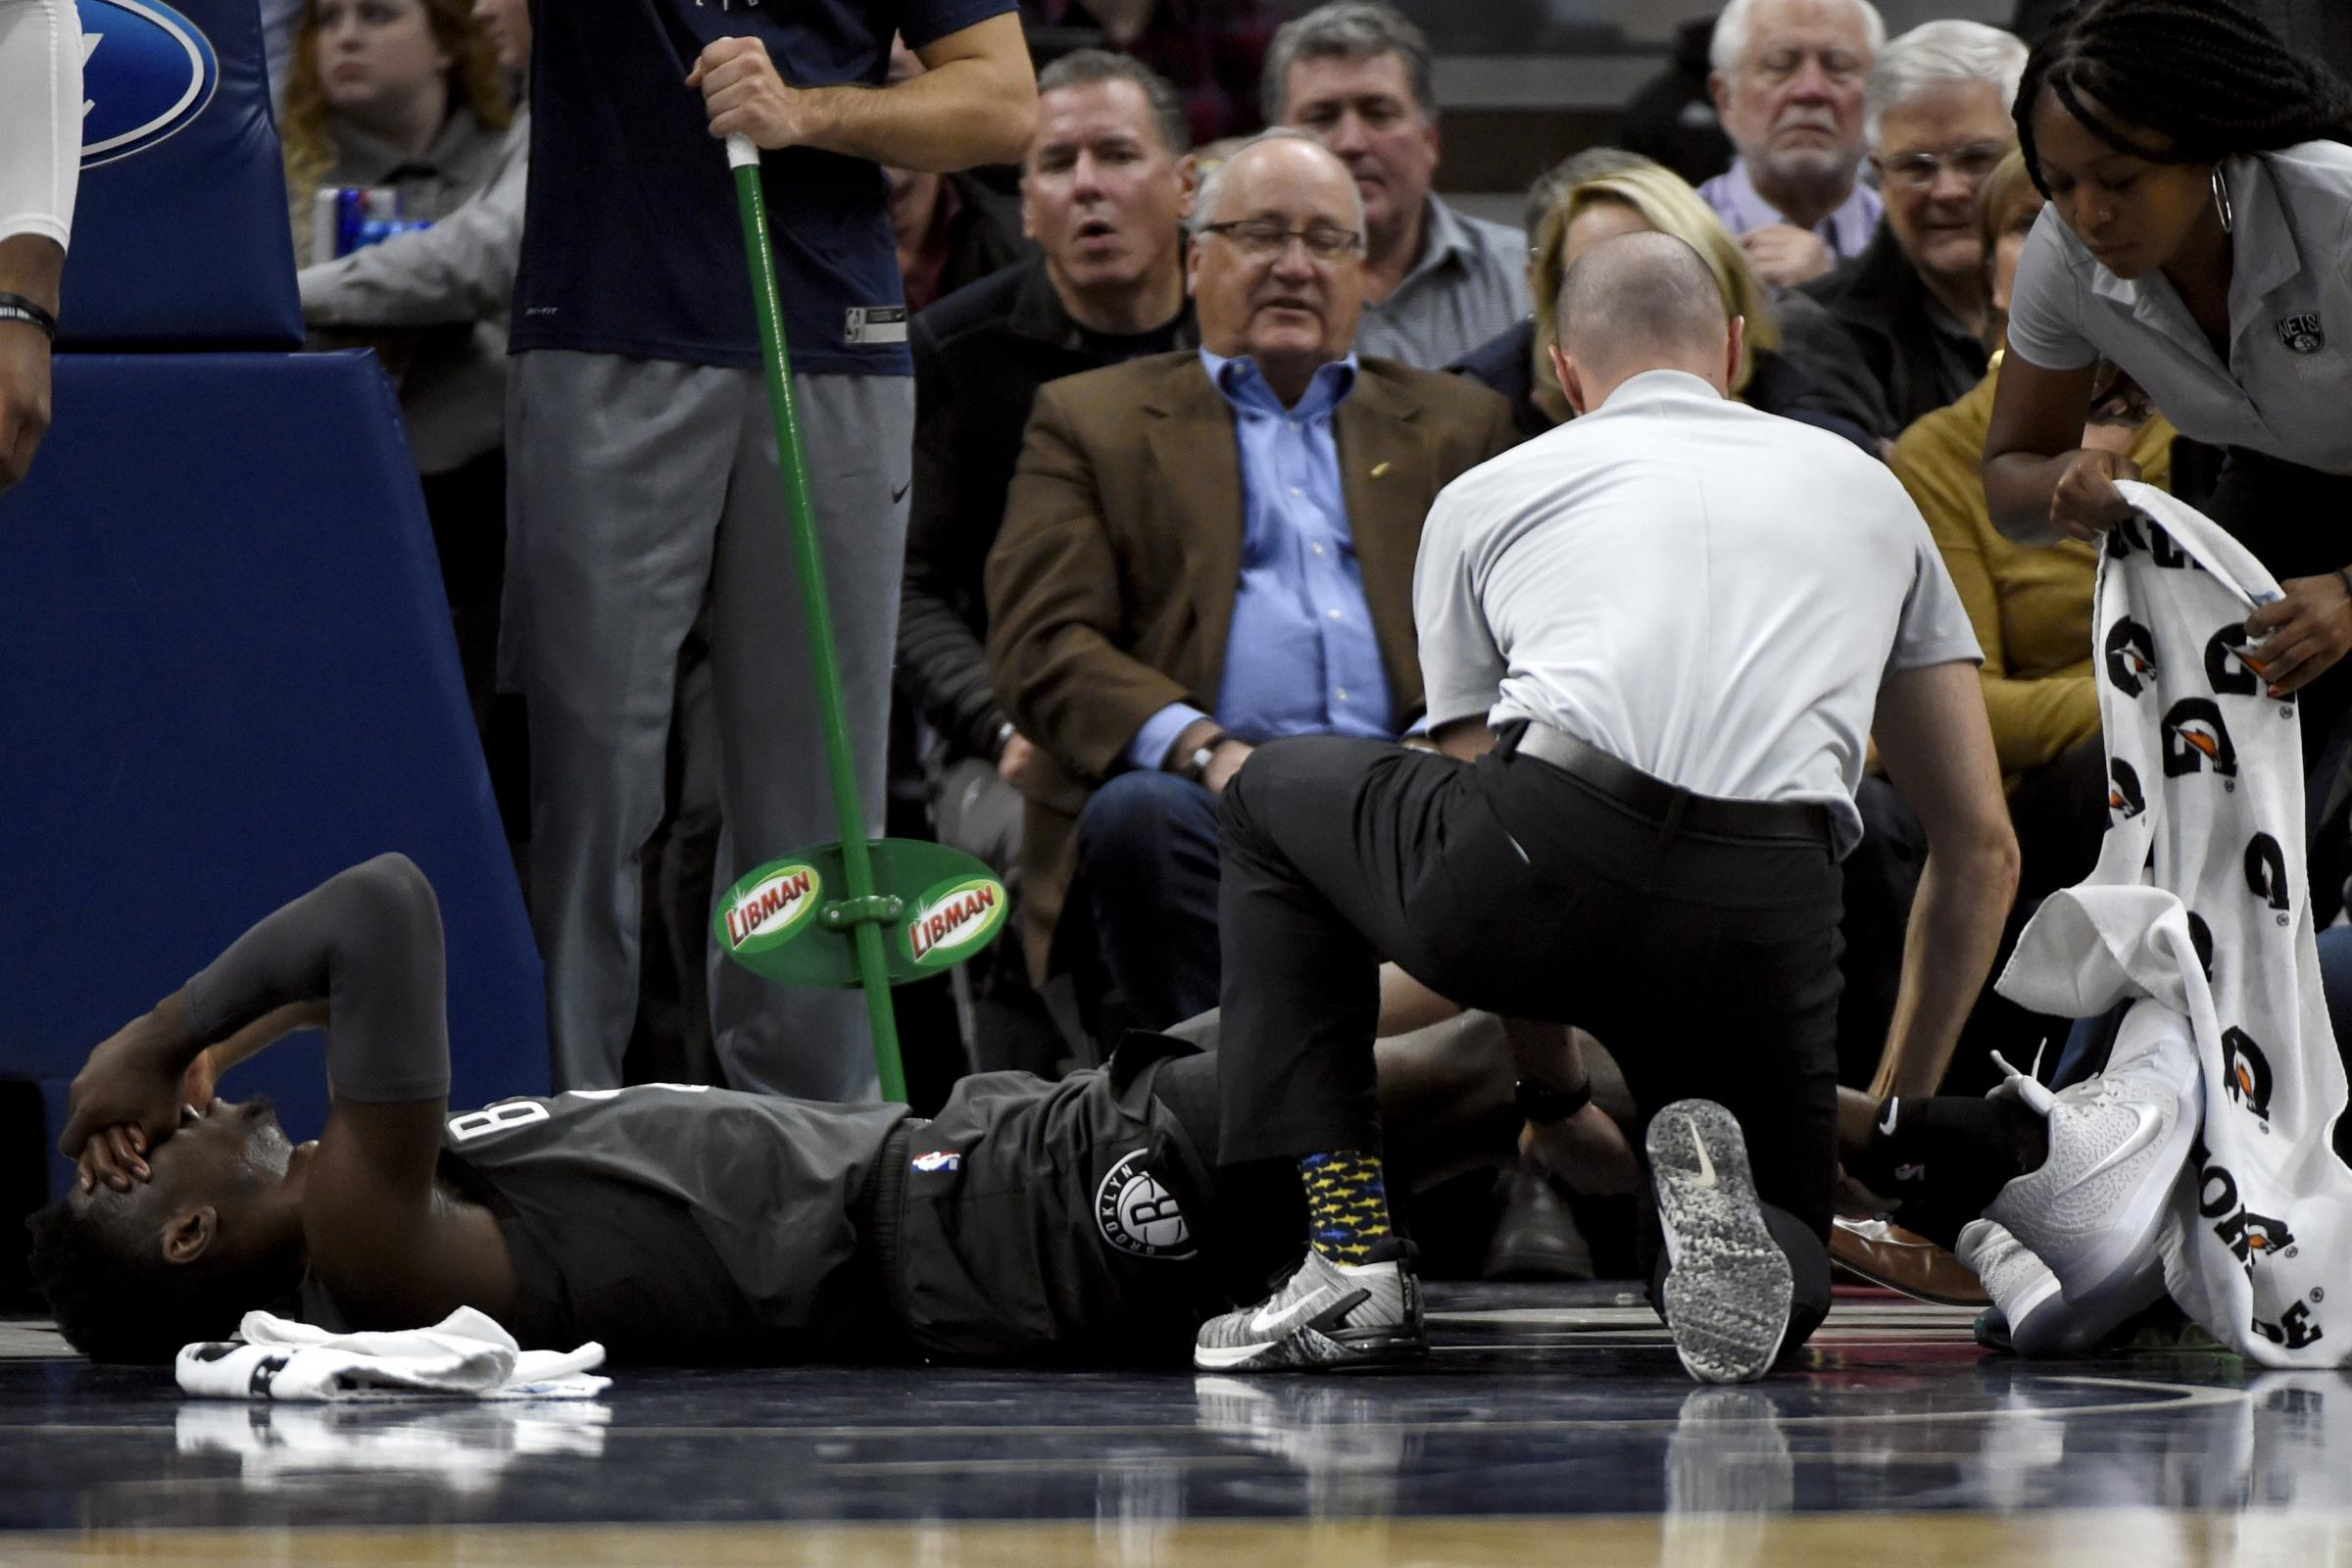 It could've been a lot worse: Caris LeVert thanks well-wishers after foot injury